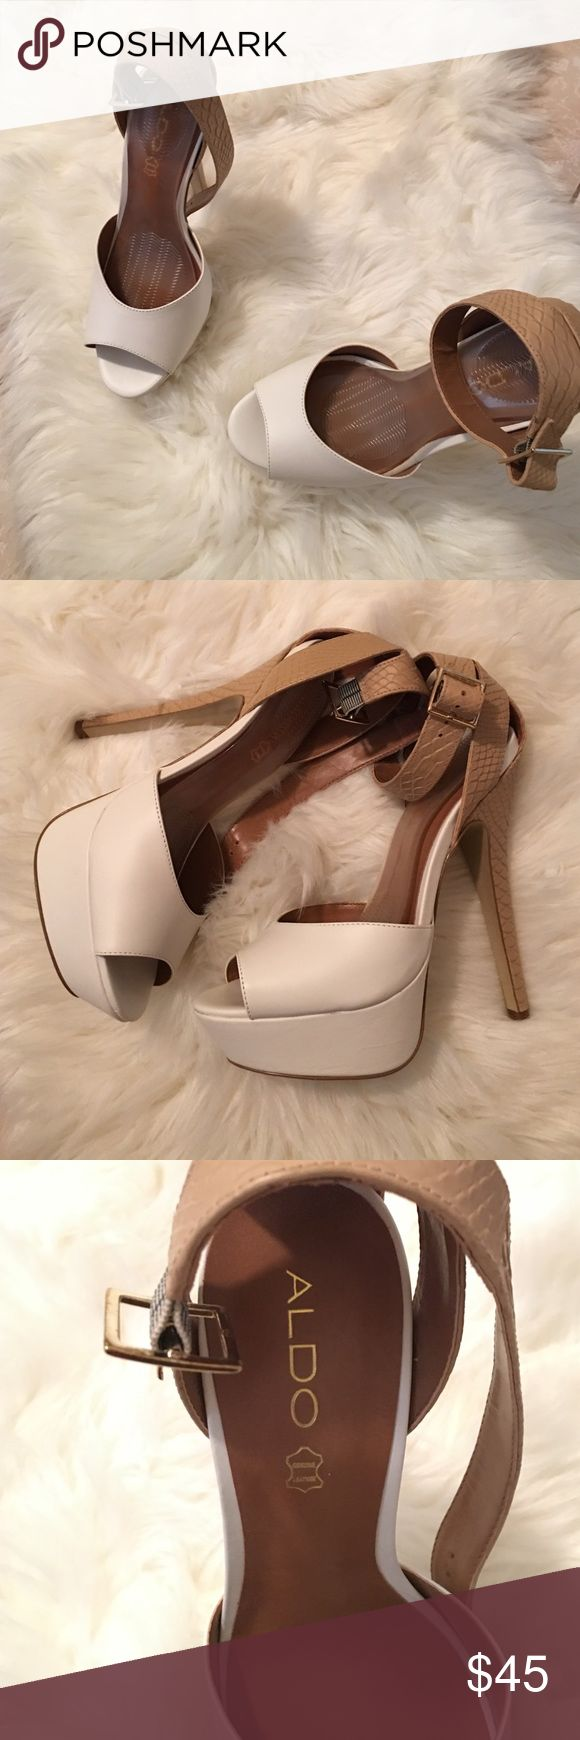 White Aldo heels 5 1/2 in ALDO heels Brand New ALDO Shoes Heels